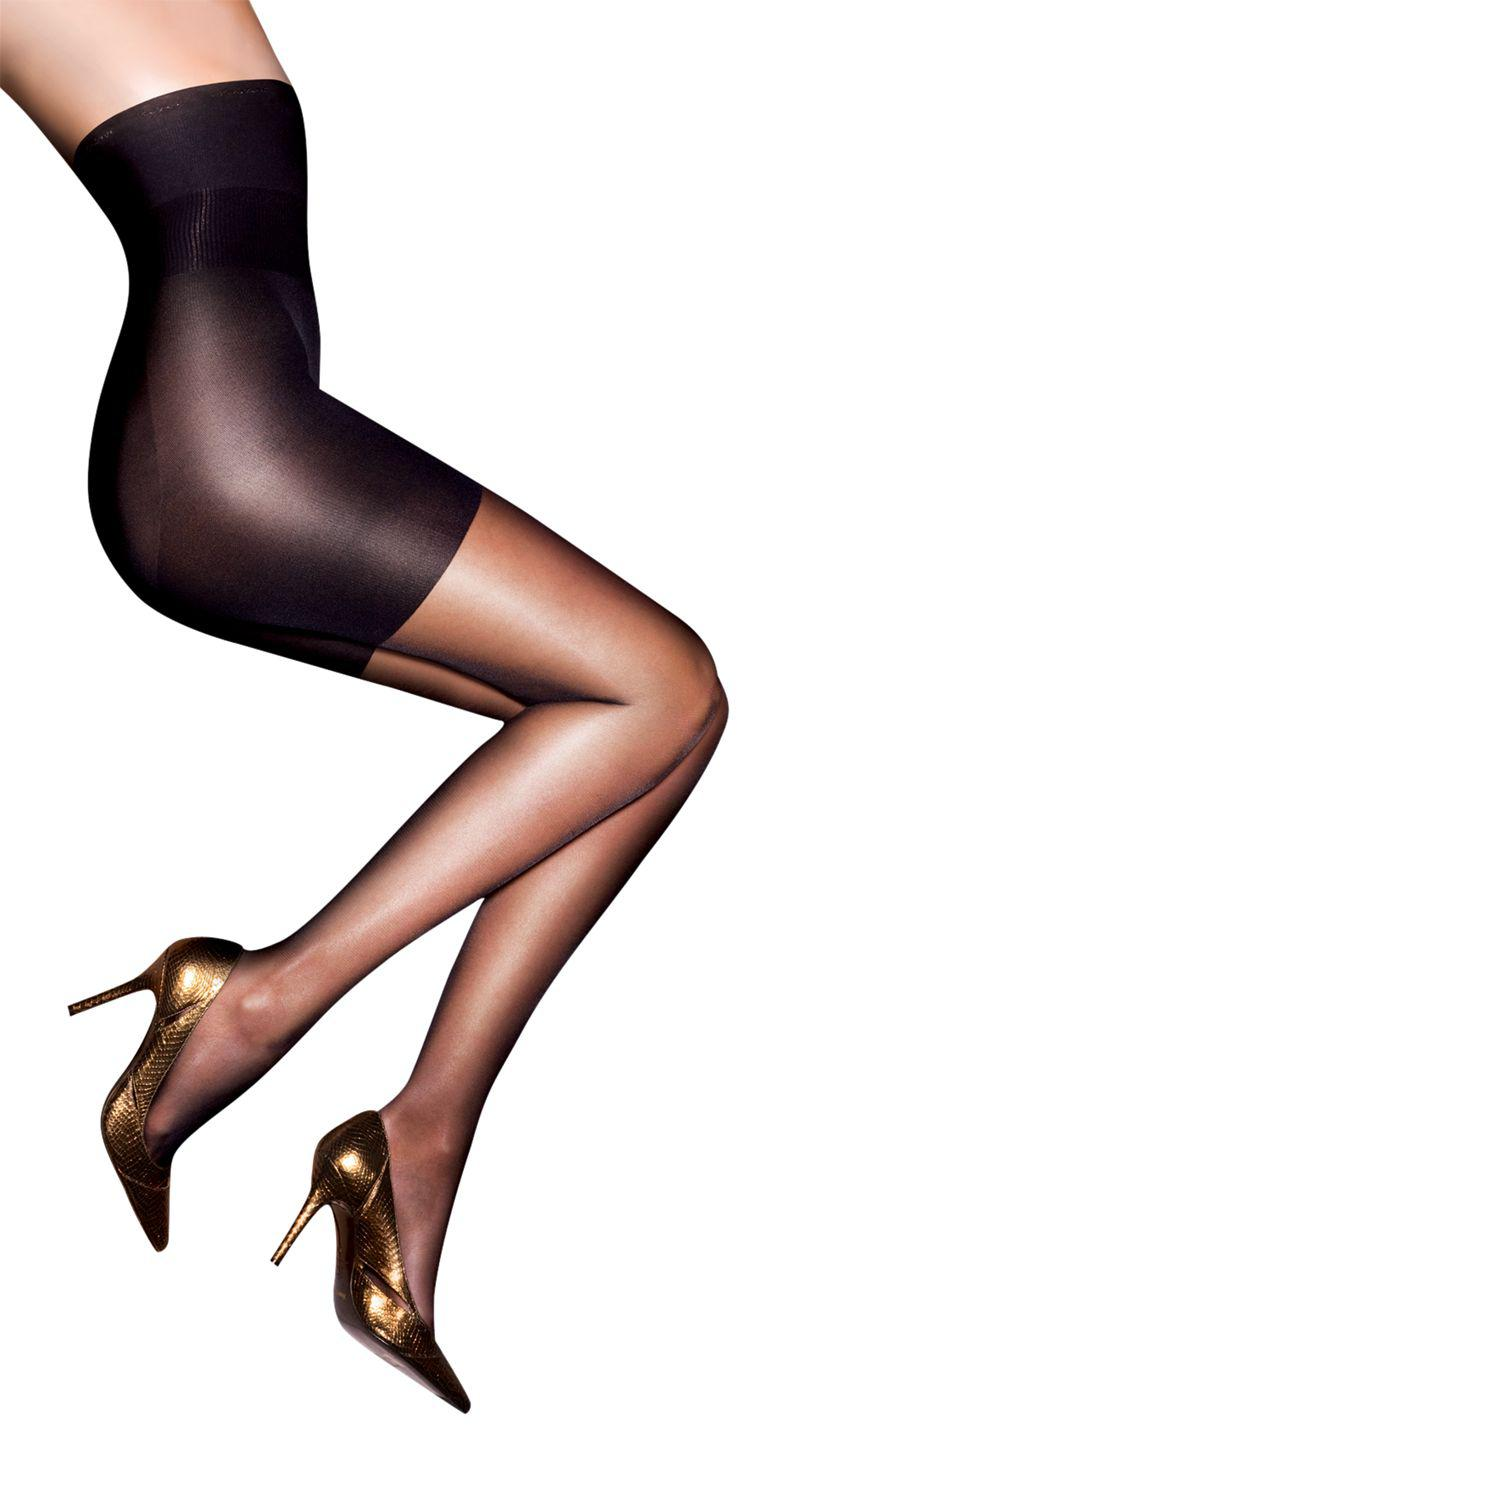 f705b6728 Aristoc - Multicolor 10 Denier Hourglass Tights - Lyst. View fullscreen